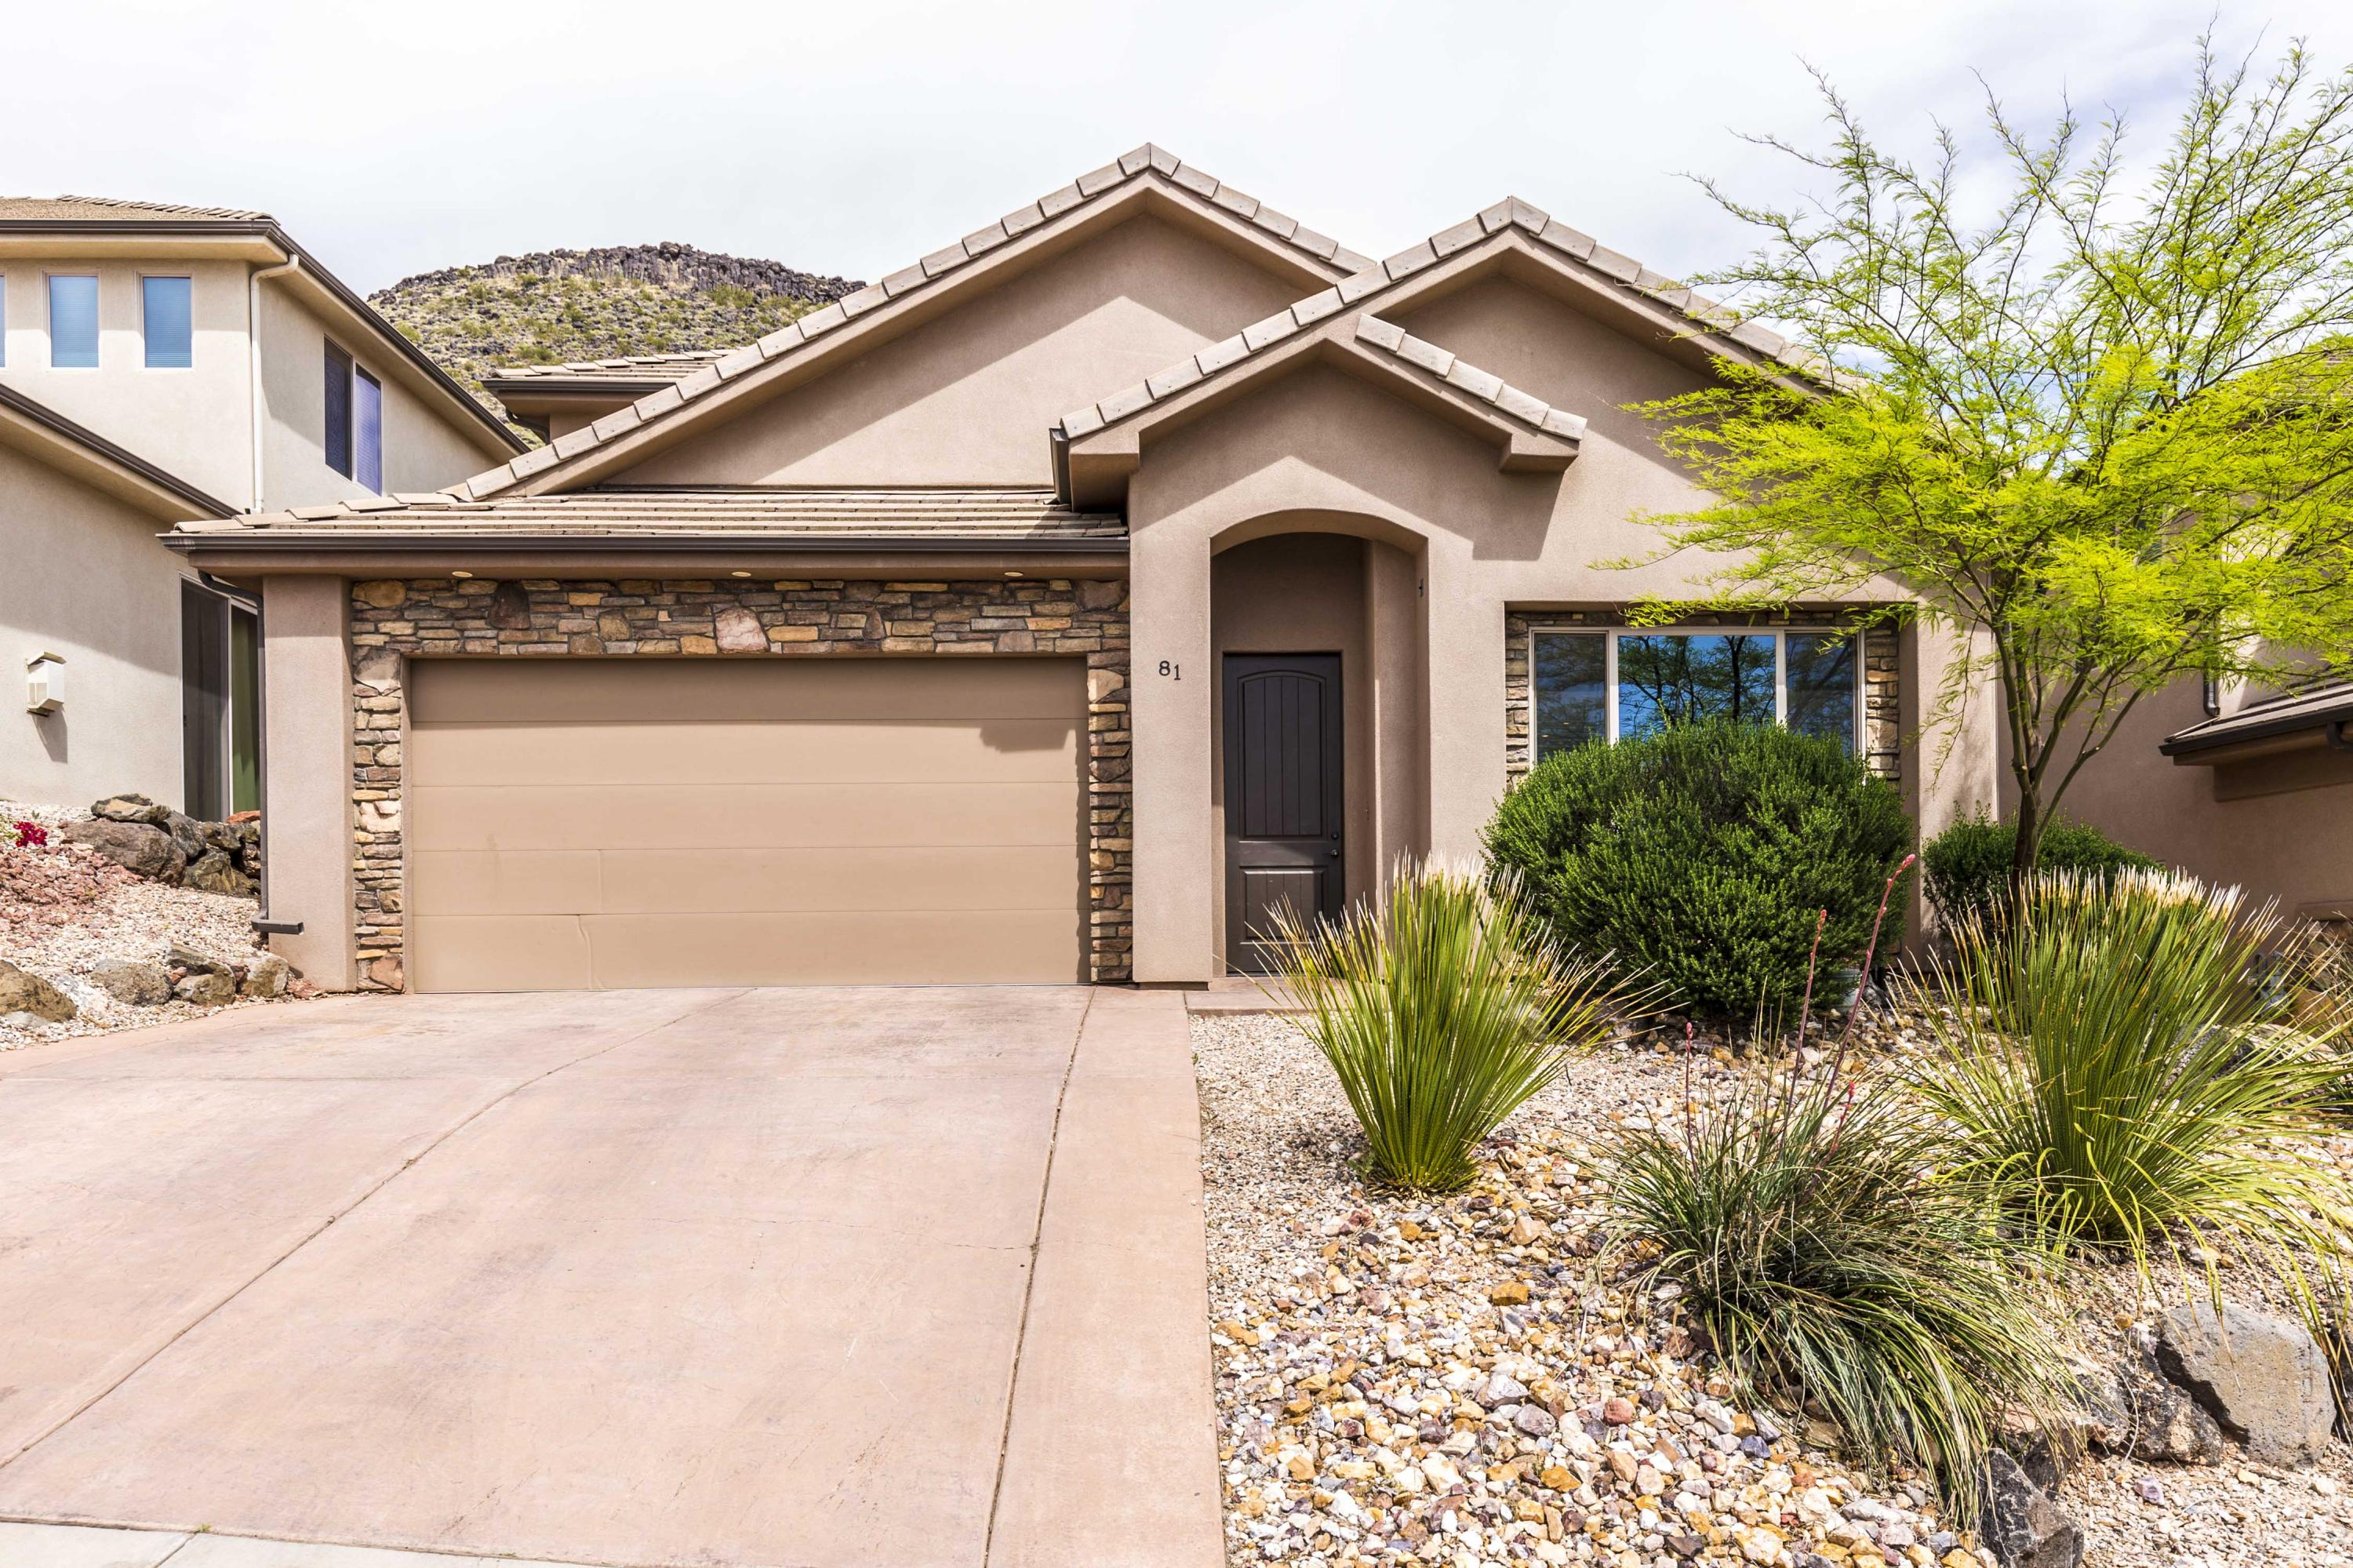 438 N Stone Mountain Dr Unit 81, St George Ut 84770